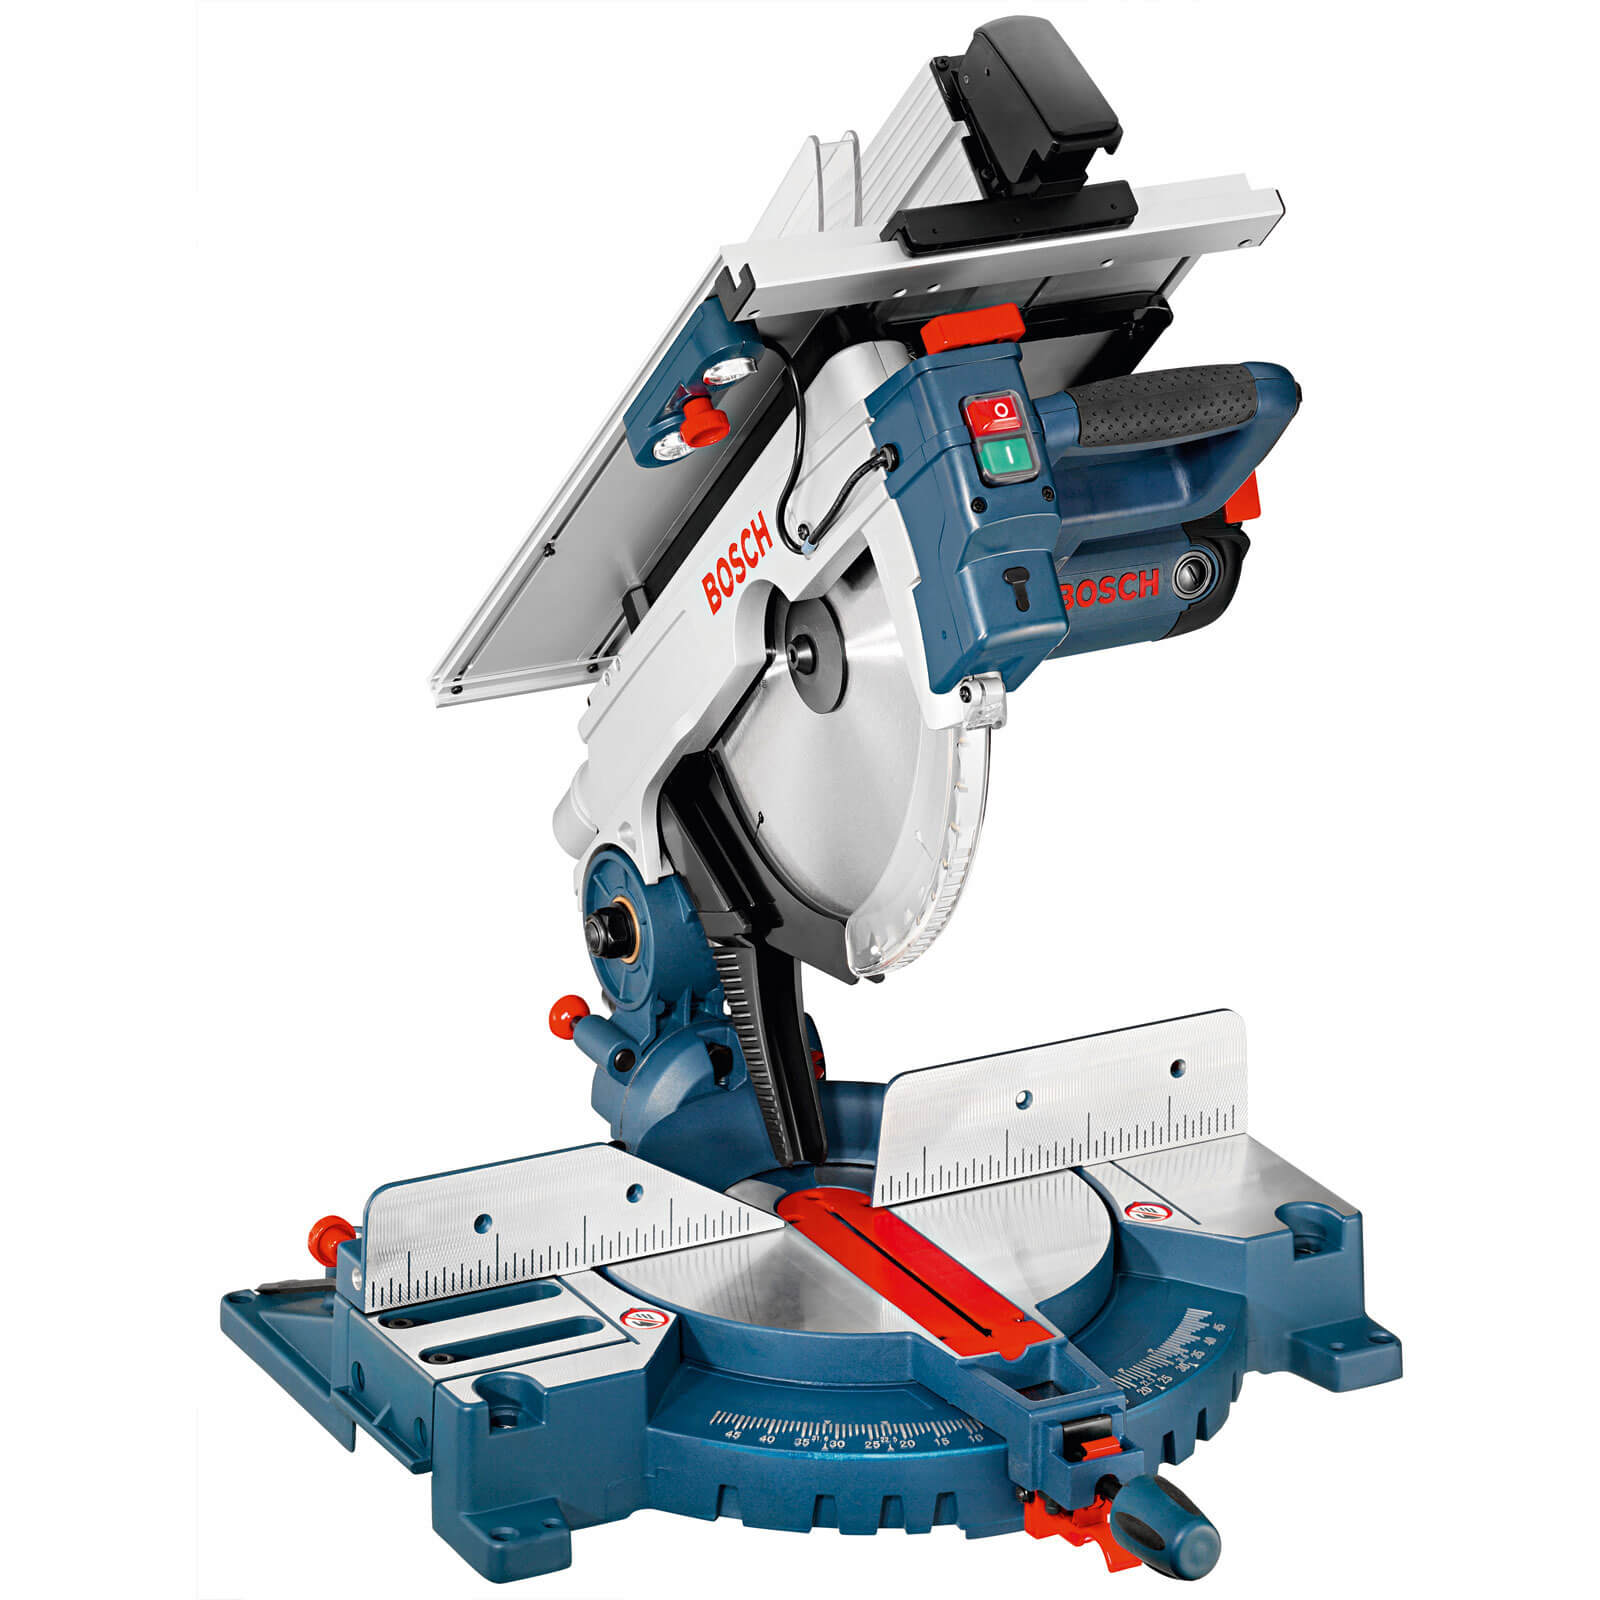 Bosch GTM 12 JL Combo Mitre Saw & Table Saw 240v